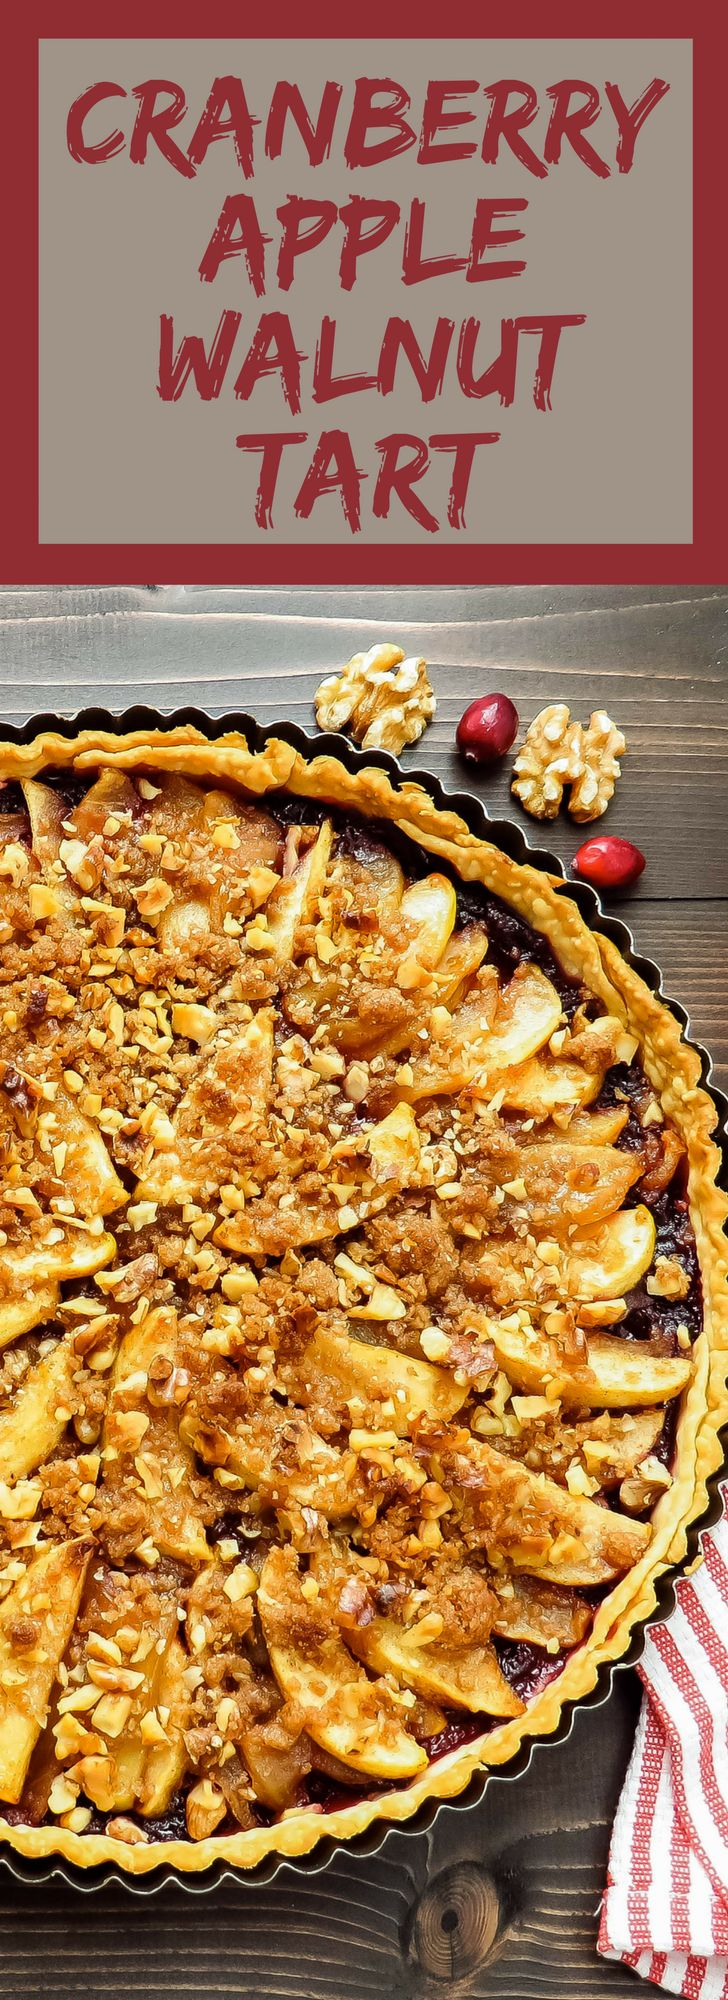 A fall dessert recipe that's not too sweet with fresh apple, leftover cranberry sauce and walnut streusel. This cranberry apple walnut tart is easy to make.